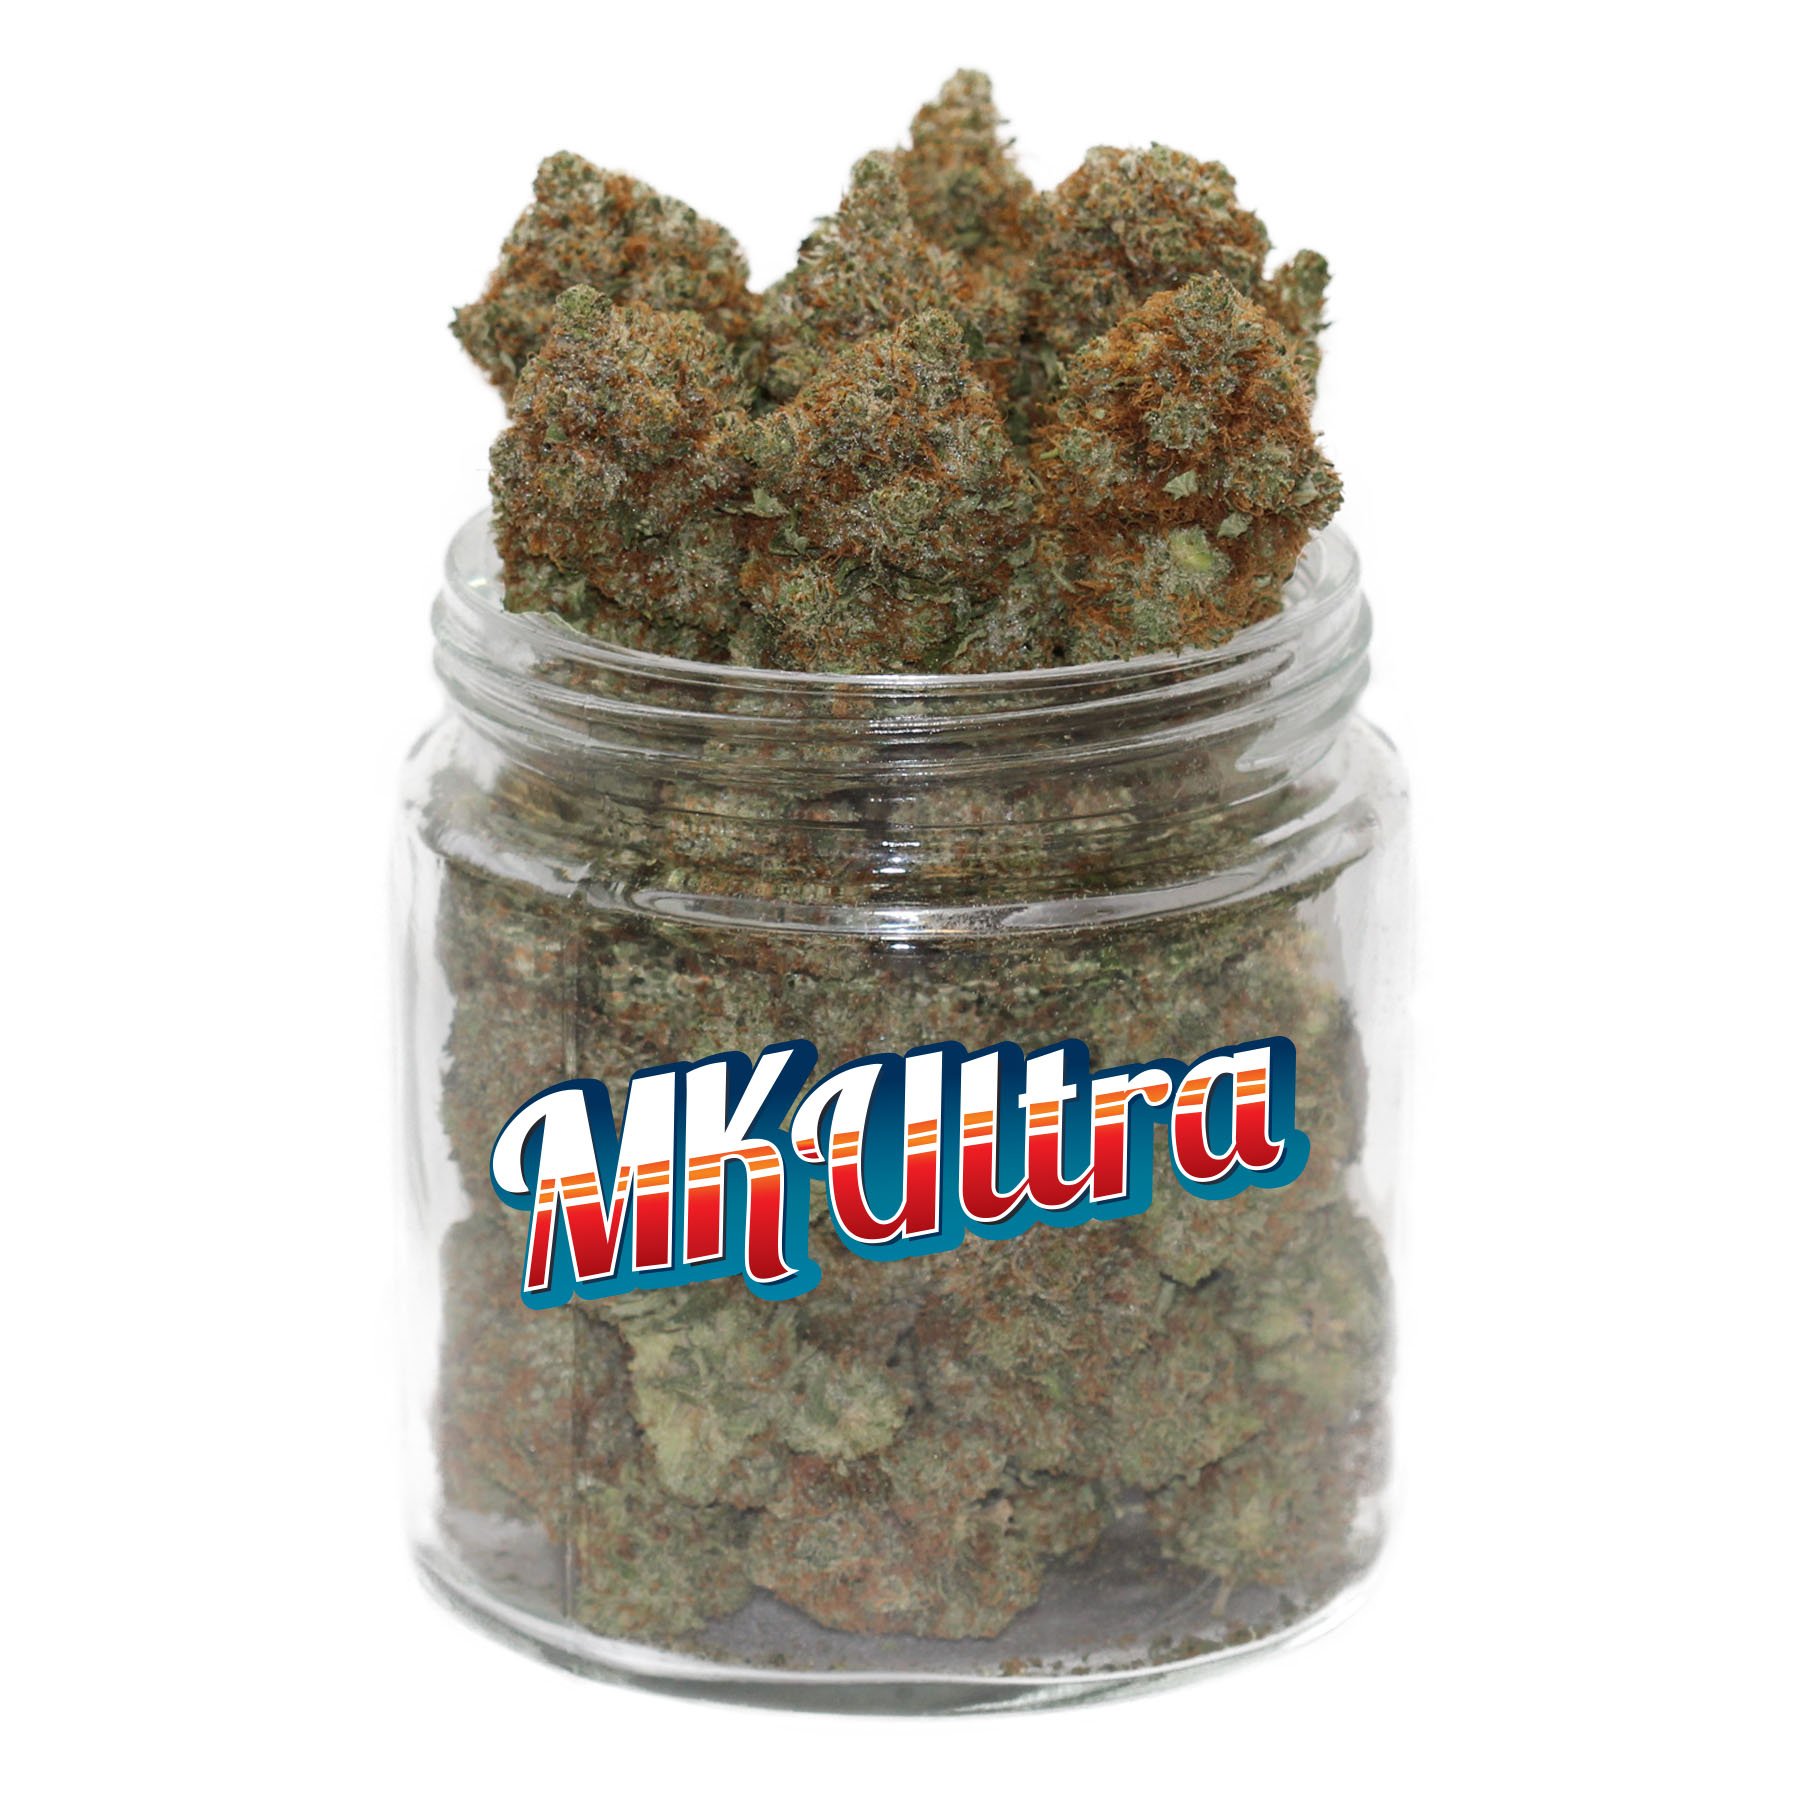 MK Ultra by Get Kush - Image © 2018 Get Kush. All Rights Reserved.